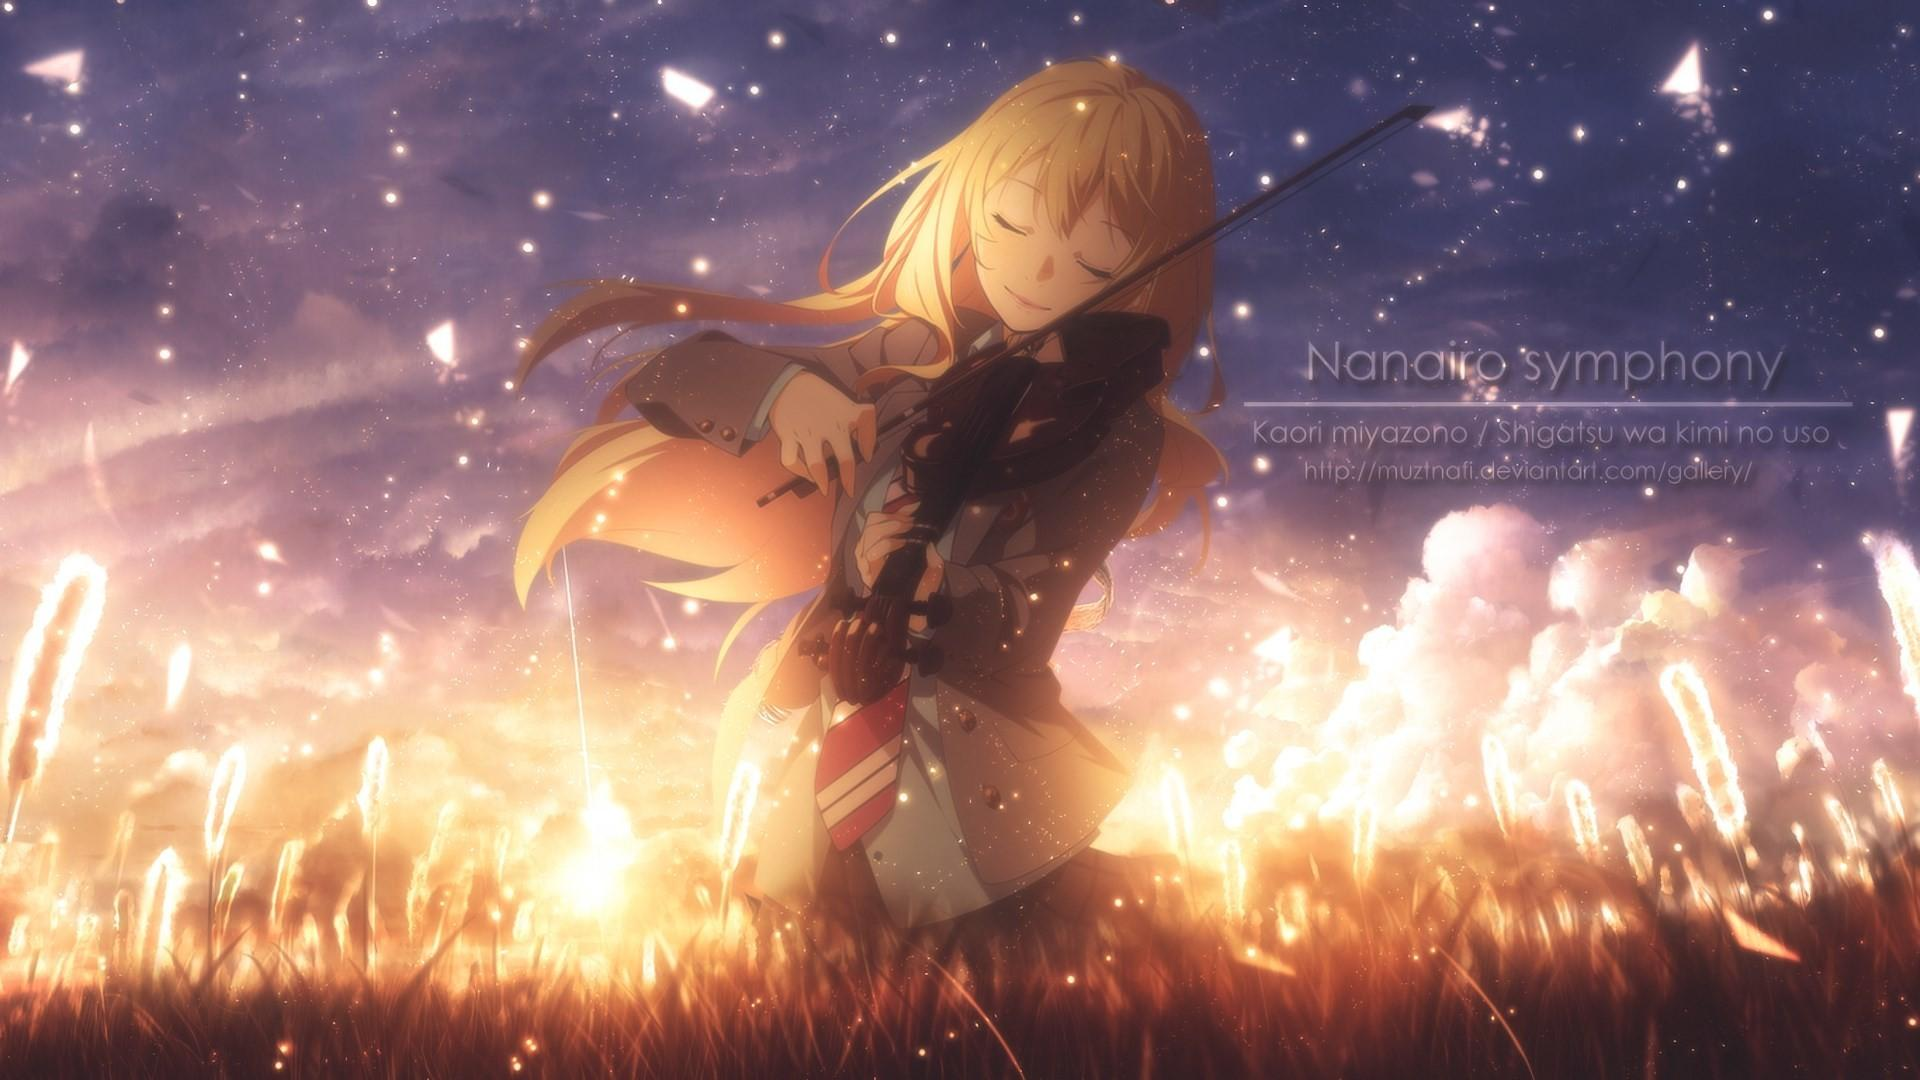 Your Lie In April Anime Wallpapers - Wallpaper Cave